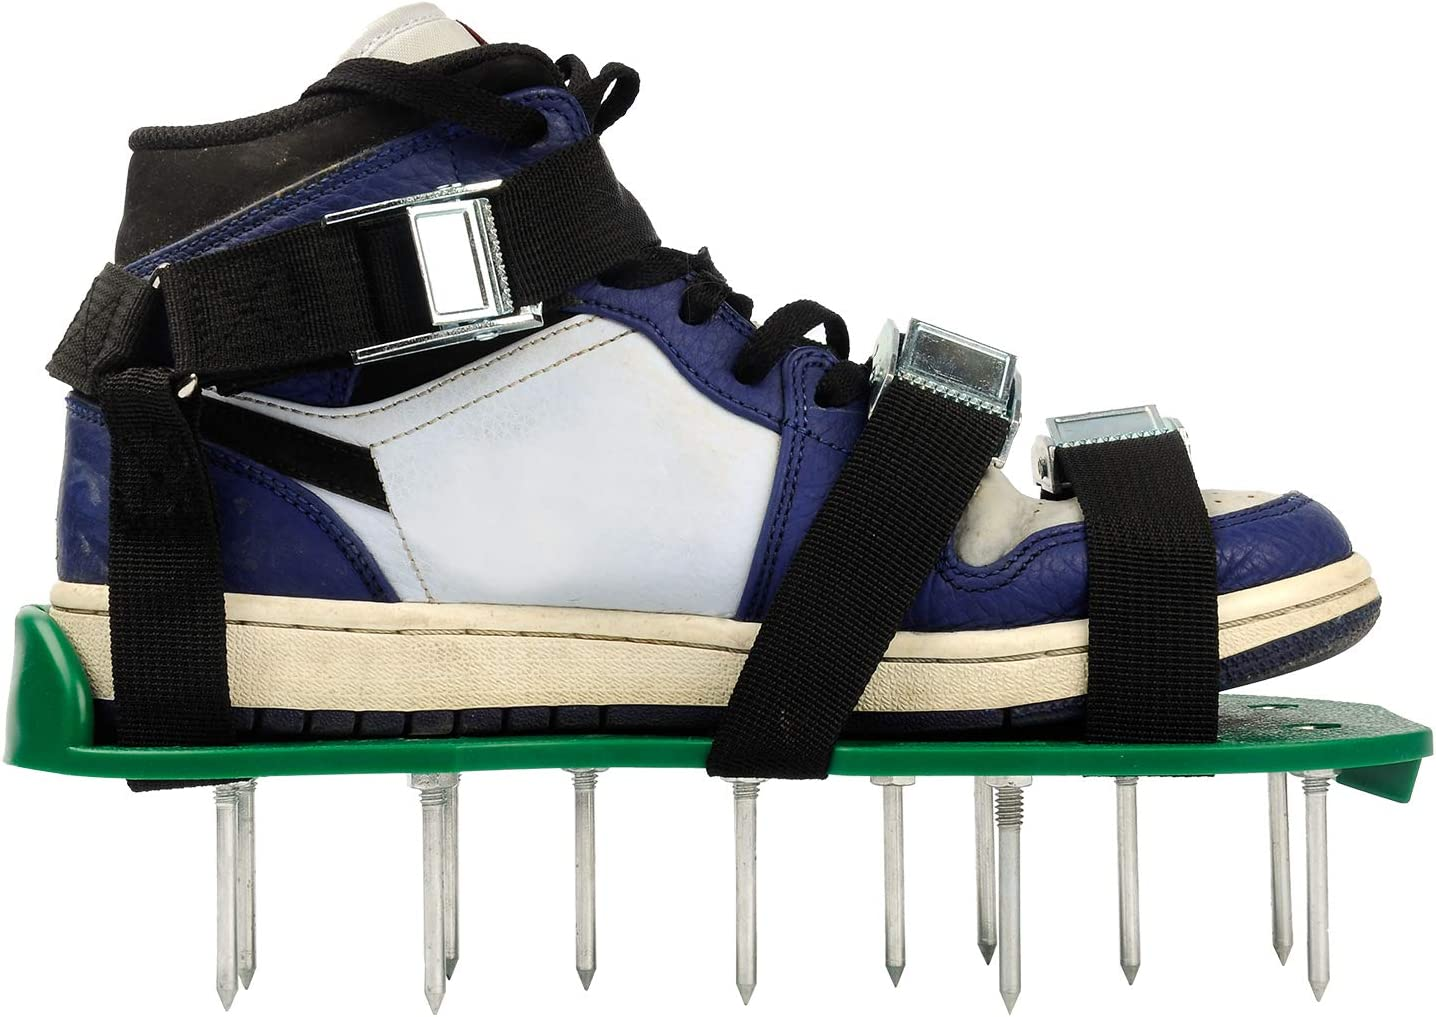 GRASSCLUB Lawn Aerator Shoes with 3 Unique Adjustable Straps and Heavy Duty Metal Buckles, Easier to Aerating Your Garden Yard or Lawn